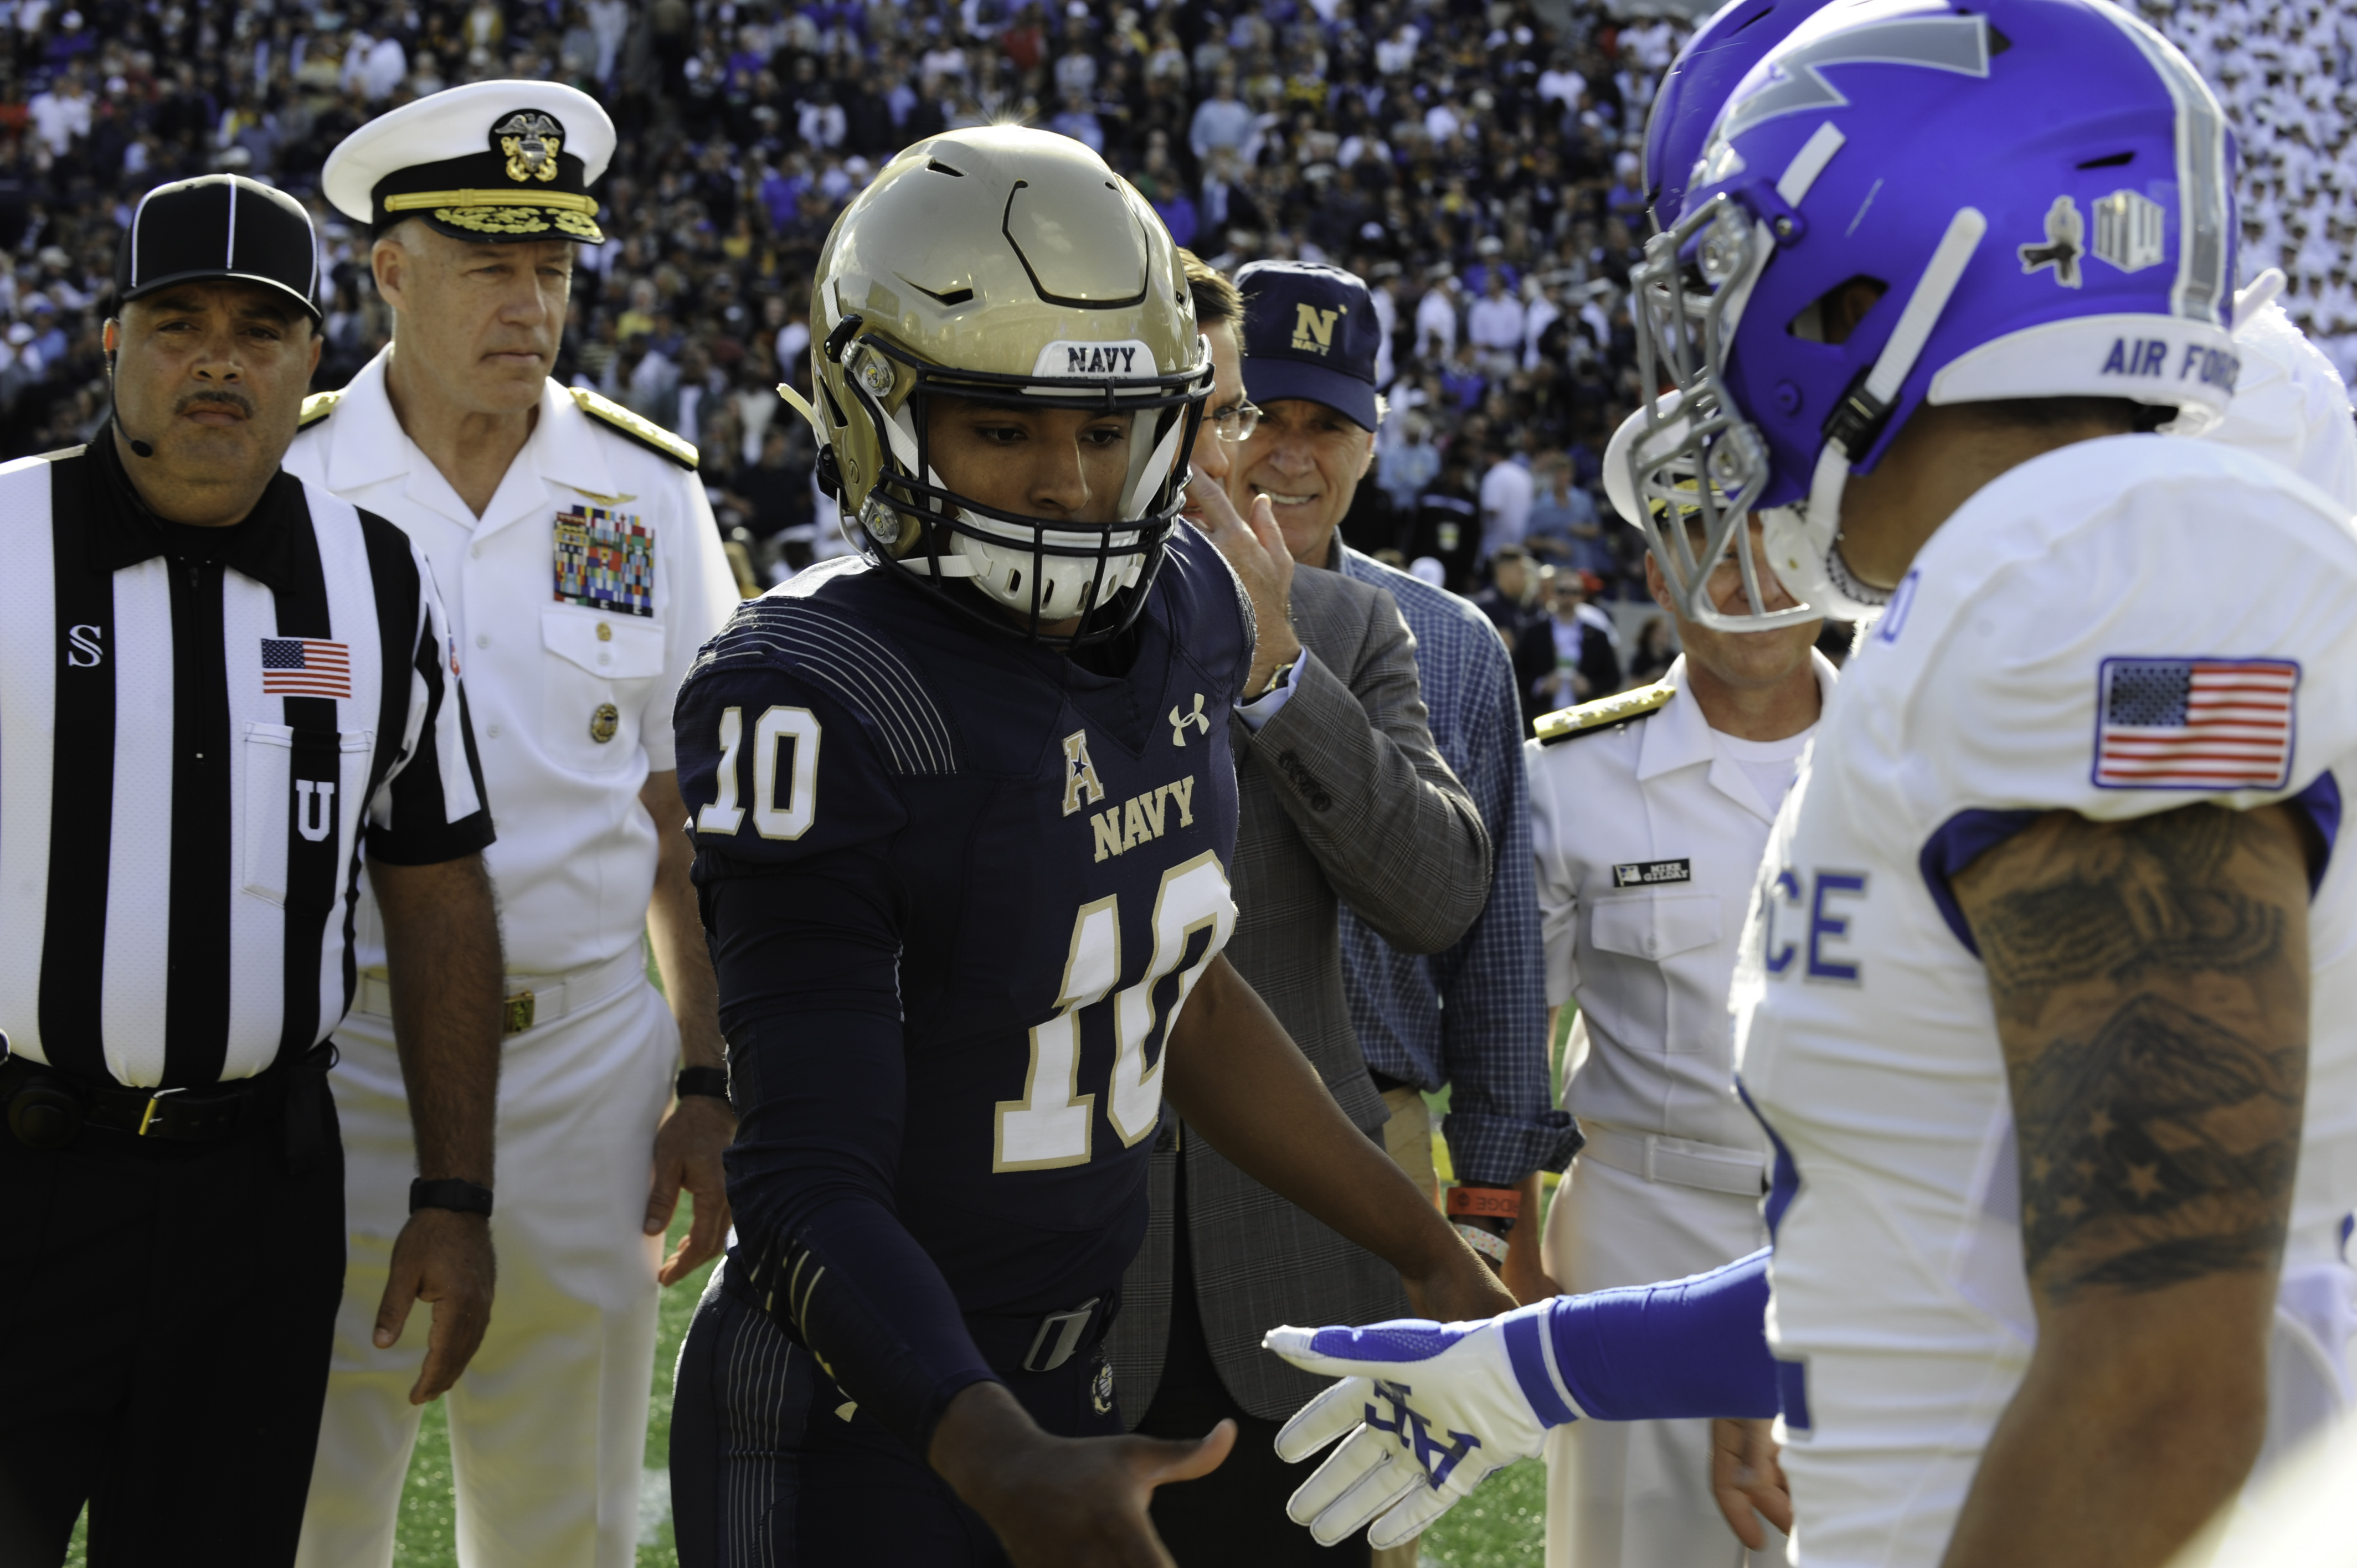 Navy Comes from Behind to Defeat Air Force, Grabs Leg Up on Commander-In-Chief's Trophy with Victory.